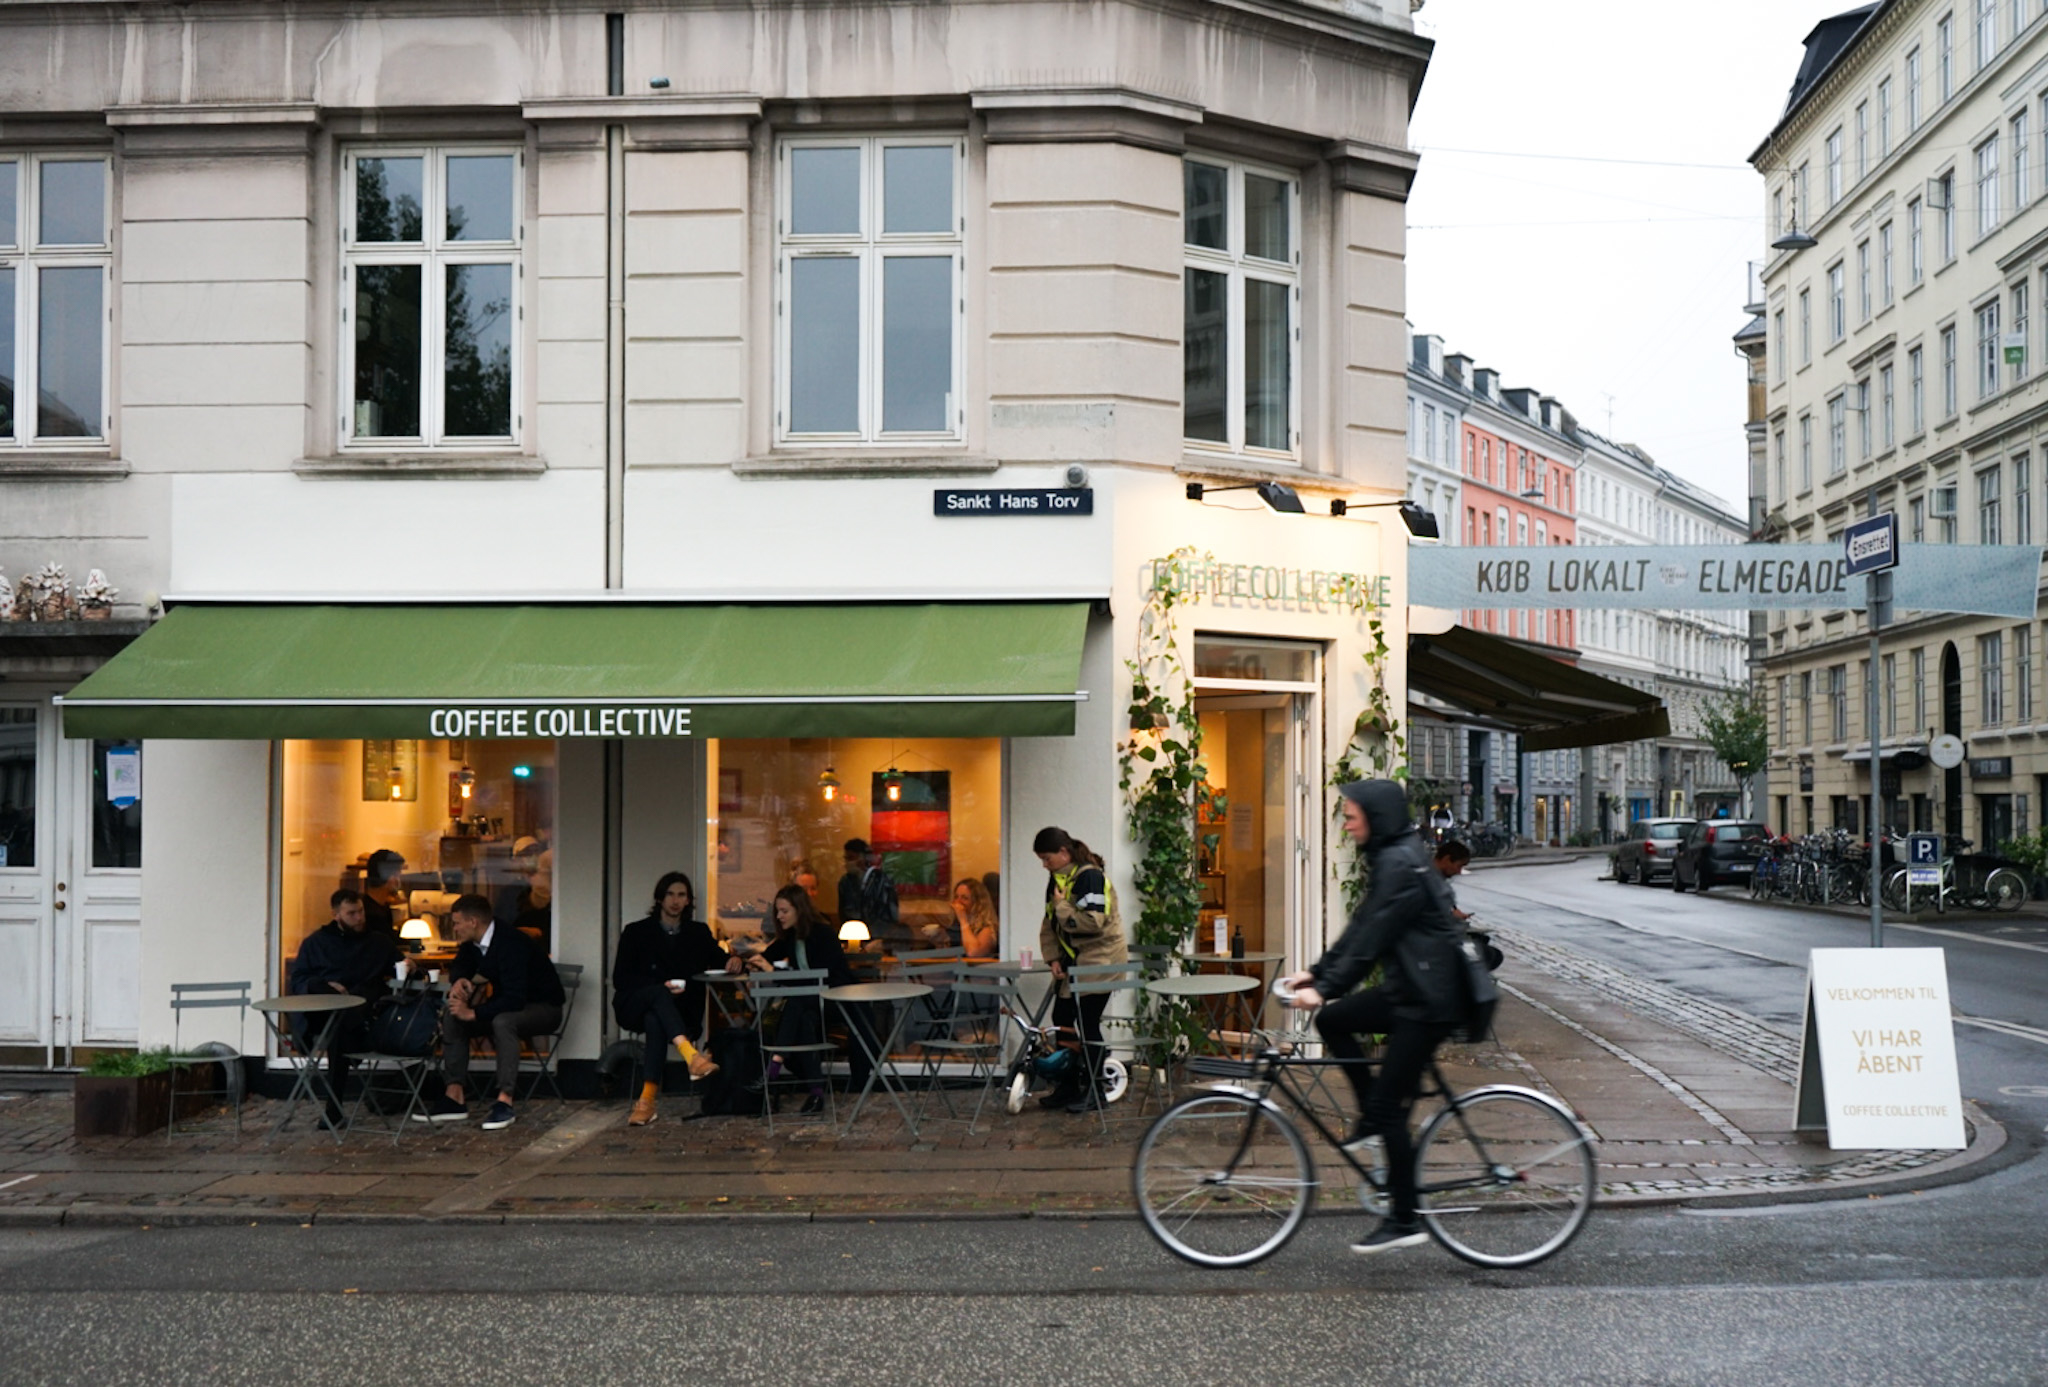 The corner of Sankt Hans Torv and Elmegade is in our view the perfect coffee spot